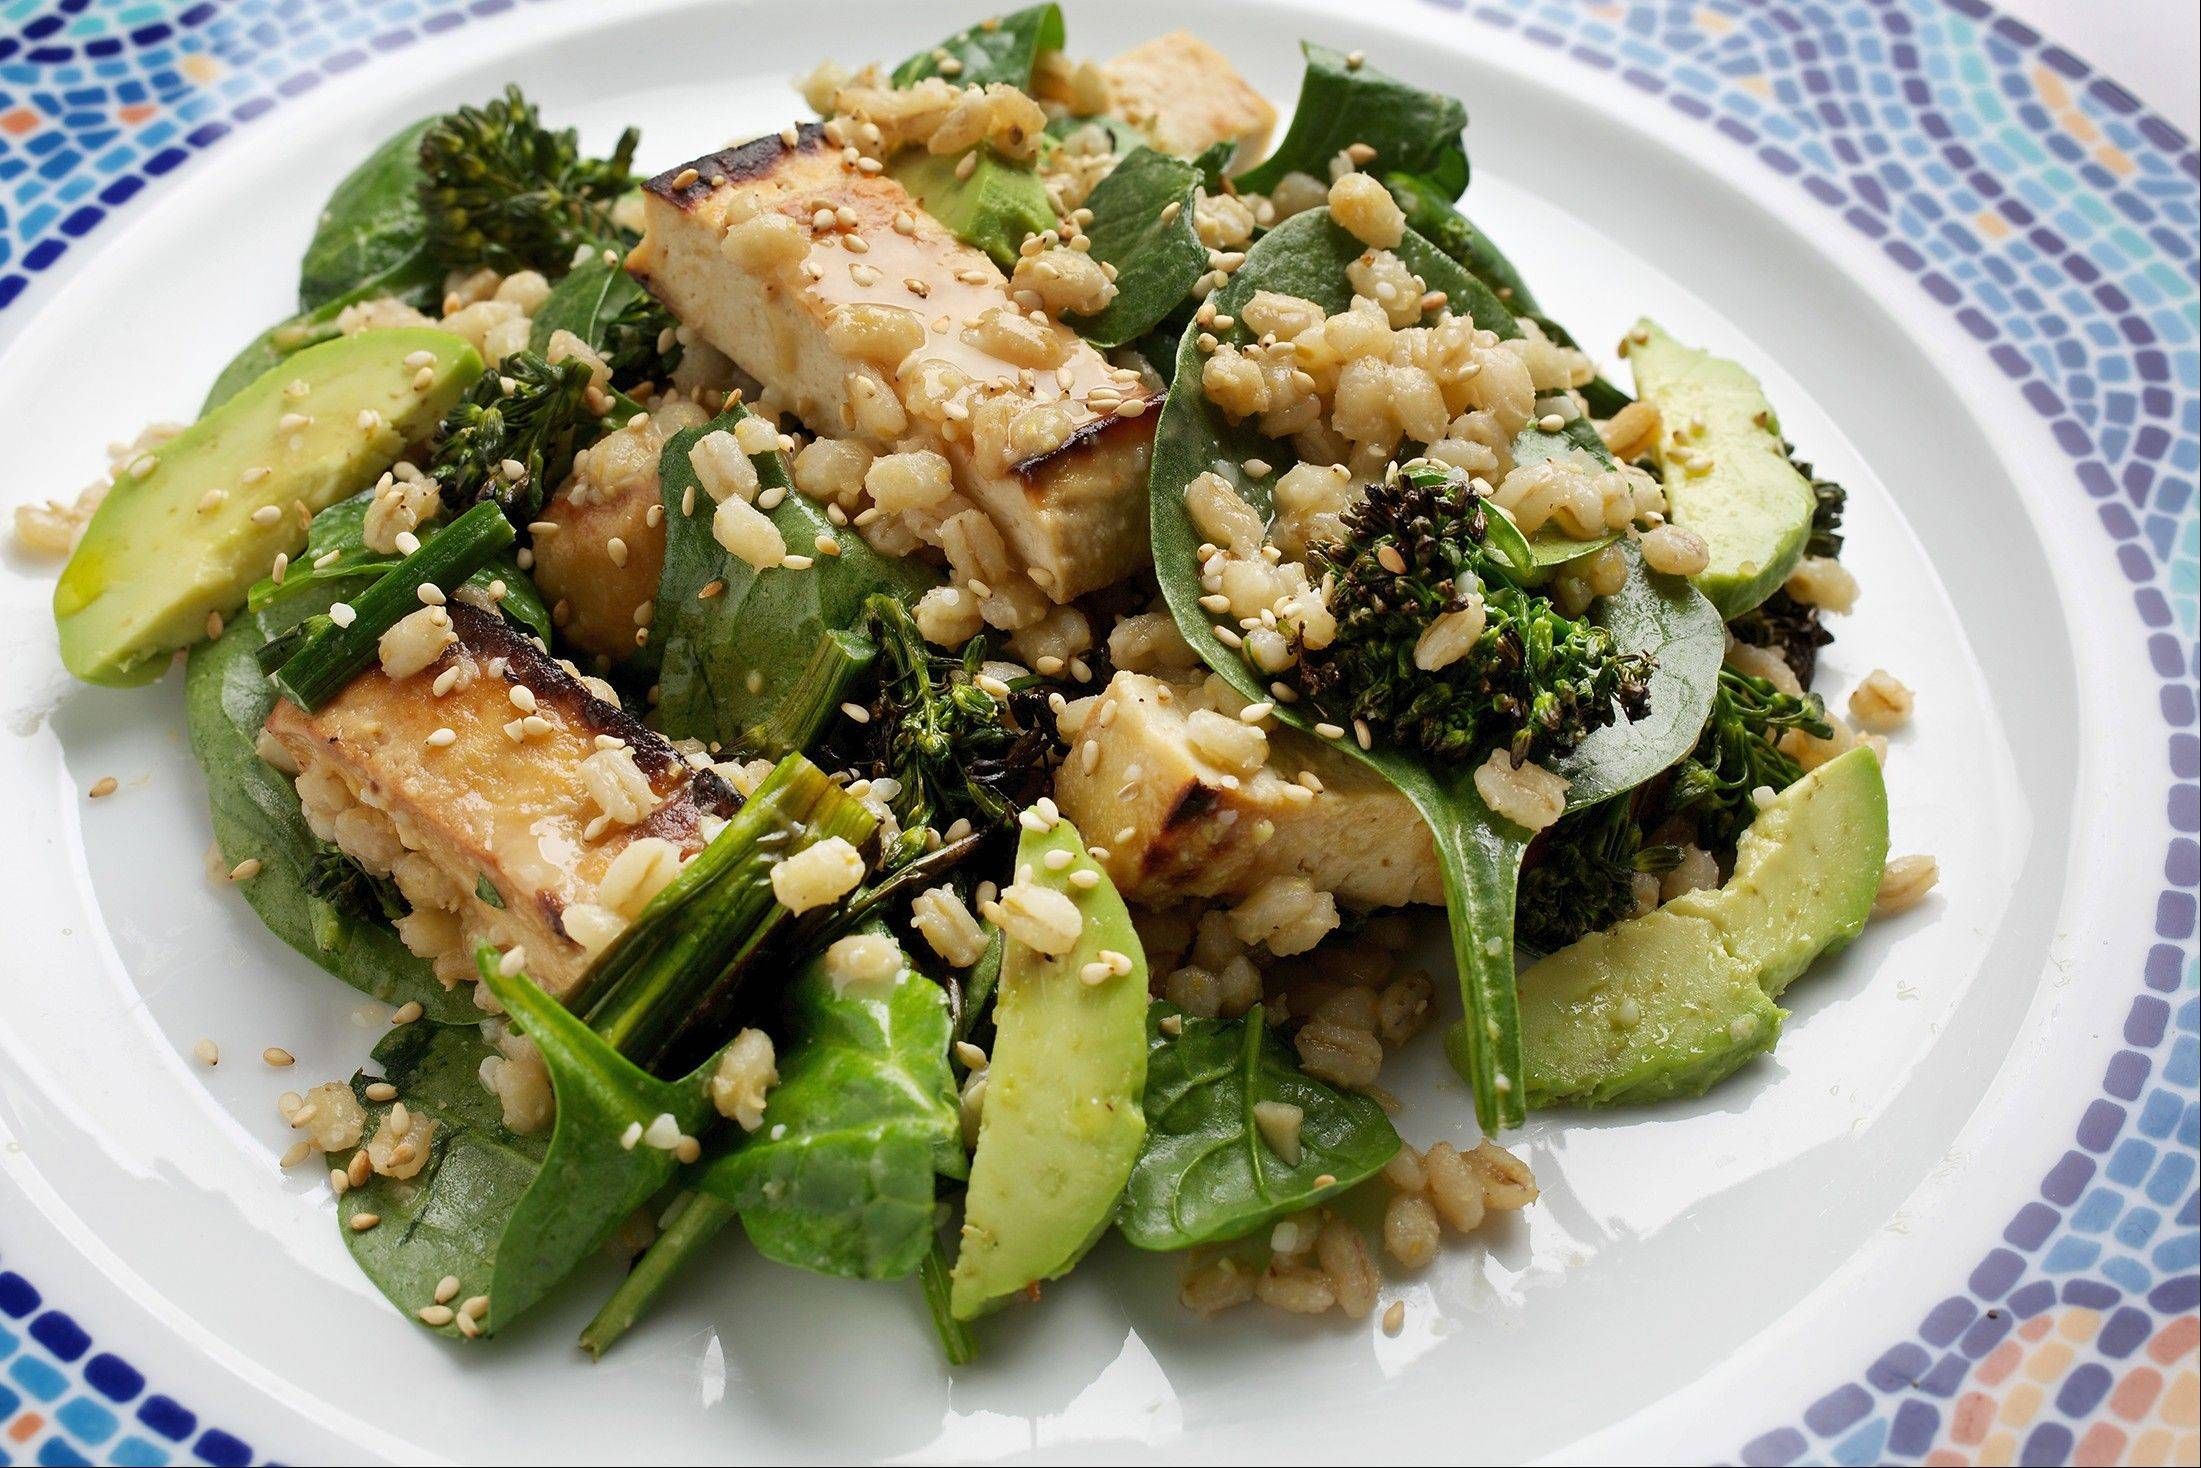 Barley and tofu add protein to a vegetarian spinach salad tossed with miso dressing.